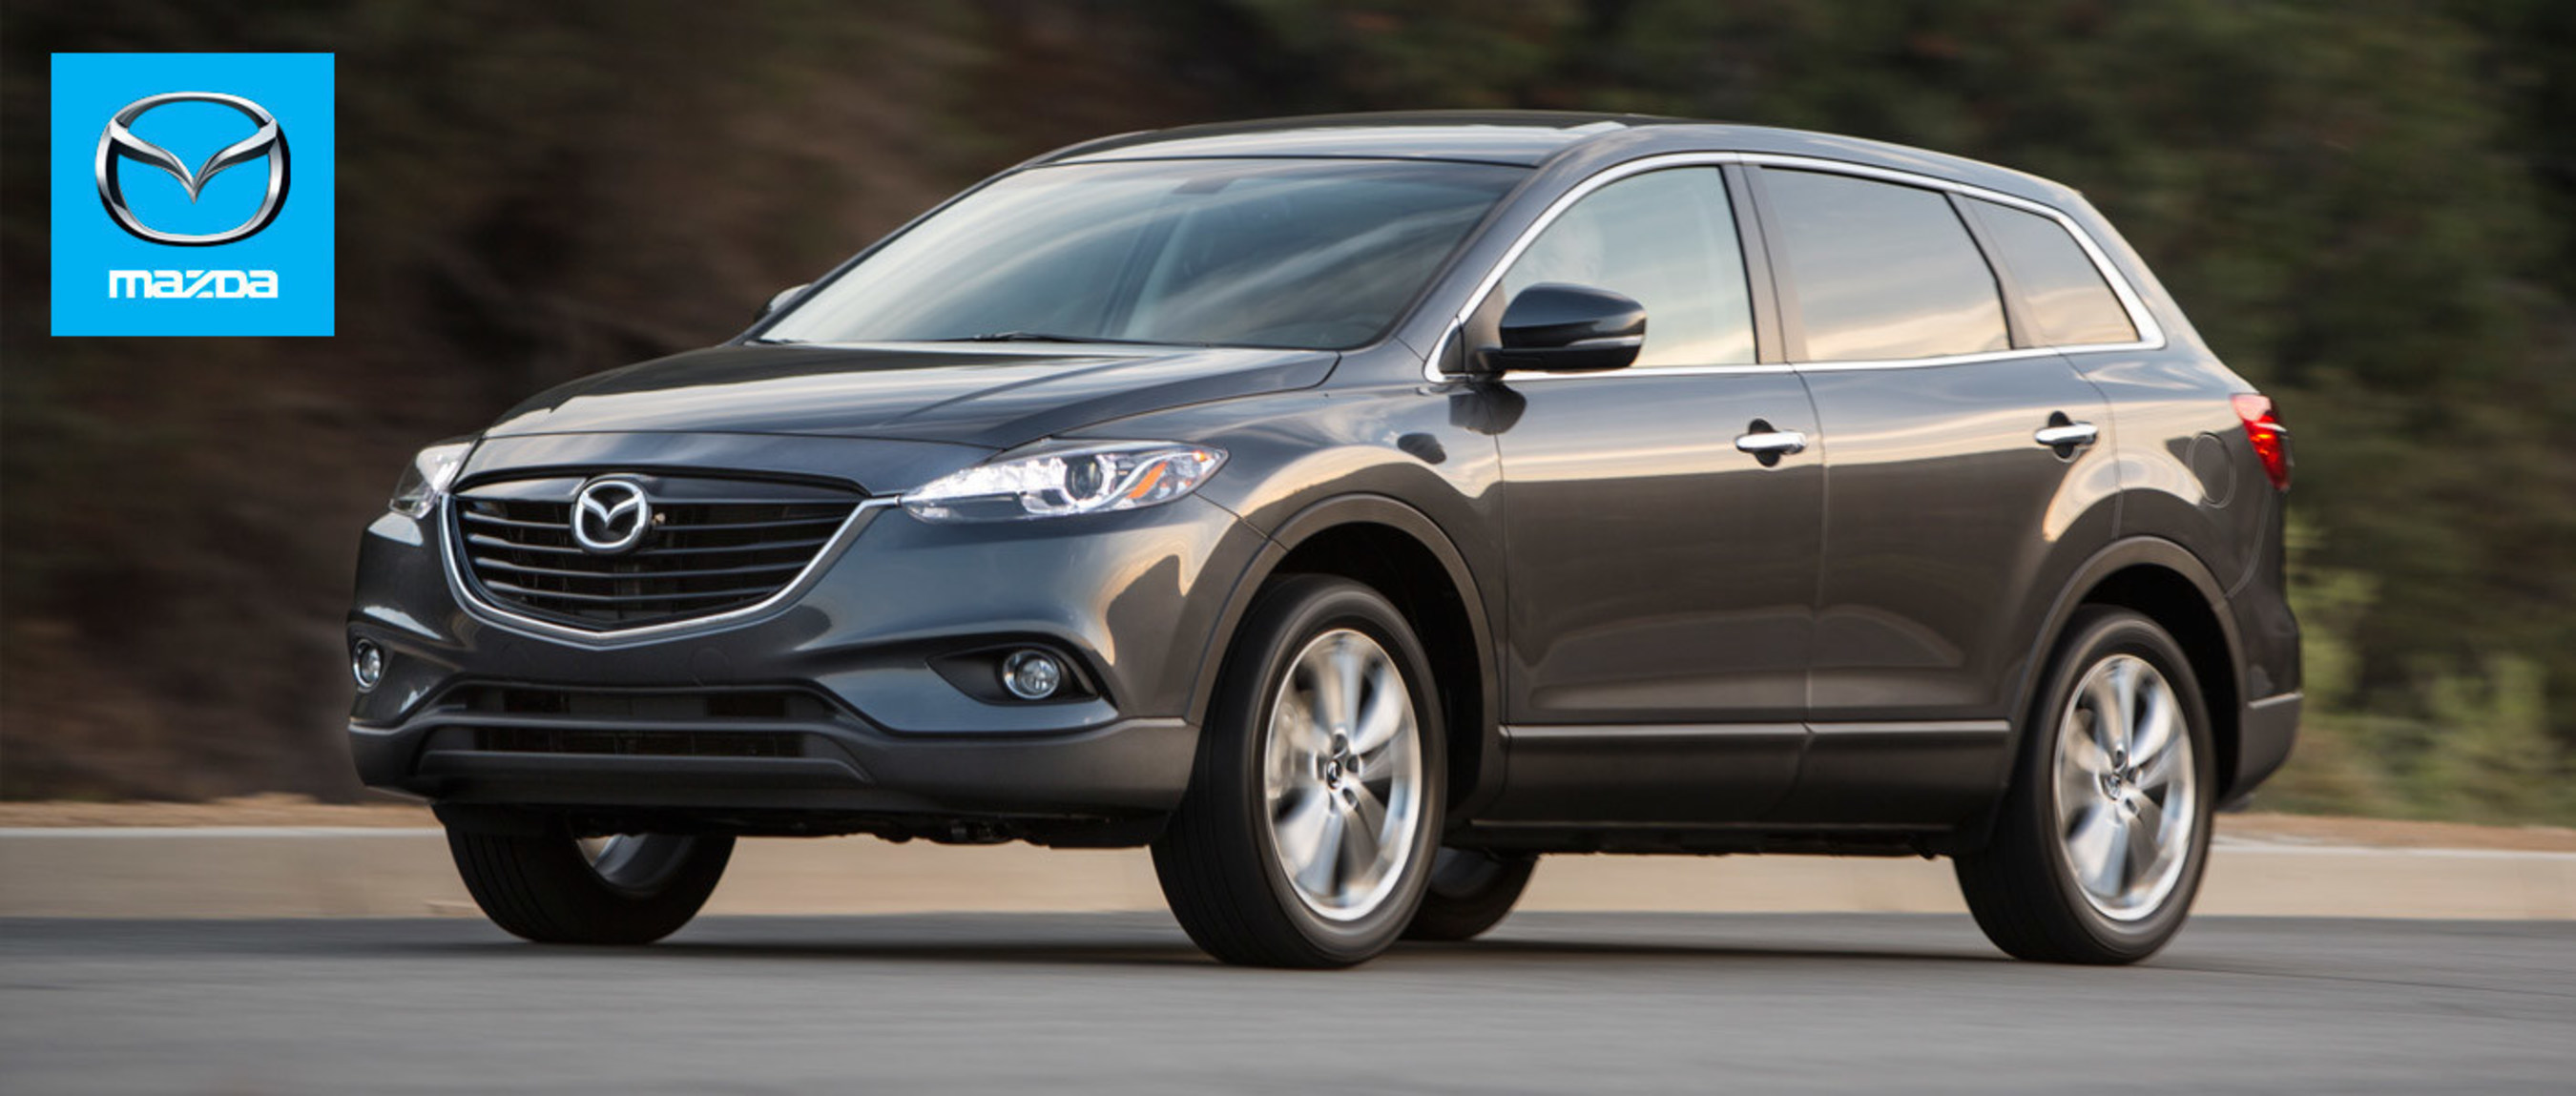 San Antonio Mazda dealer celebrates used SUV inventory with new research page